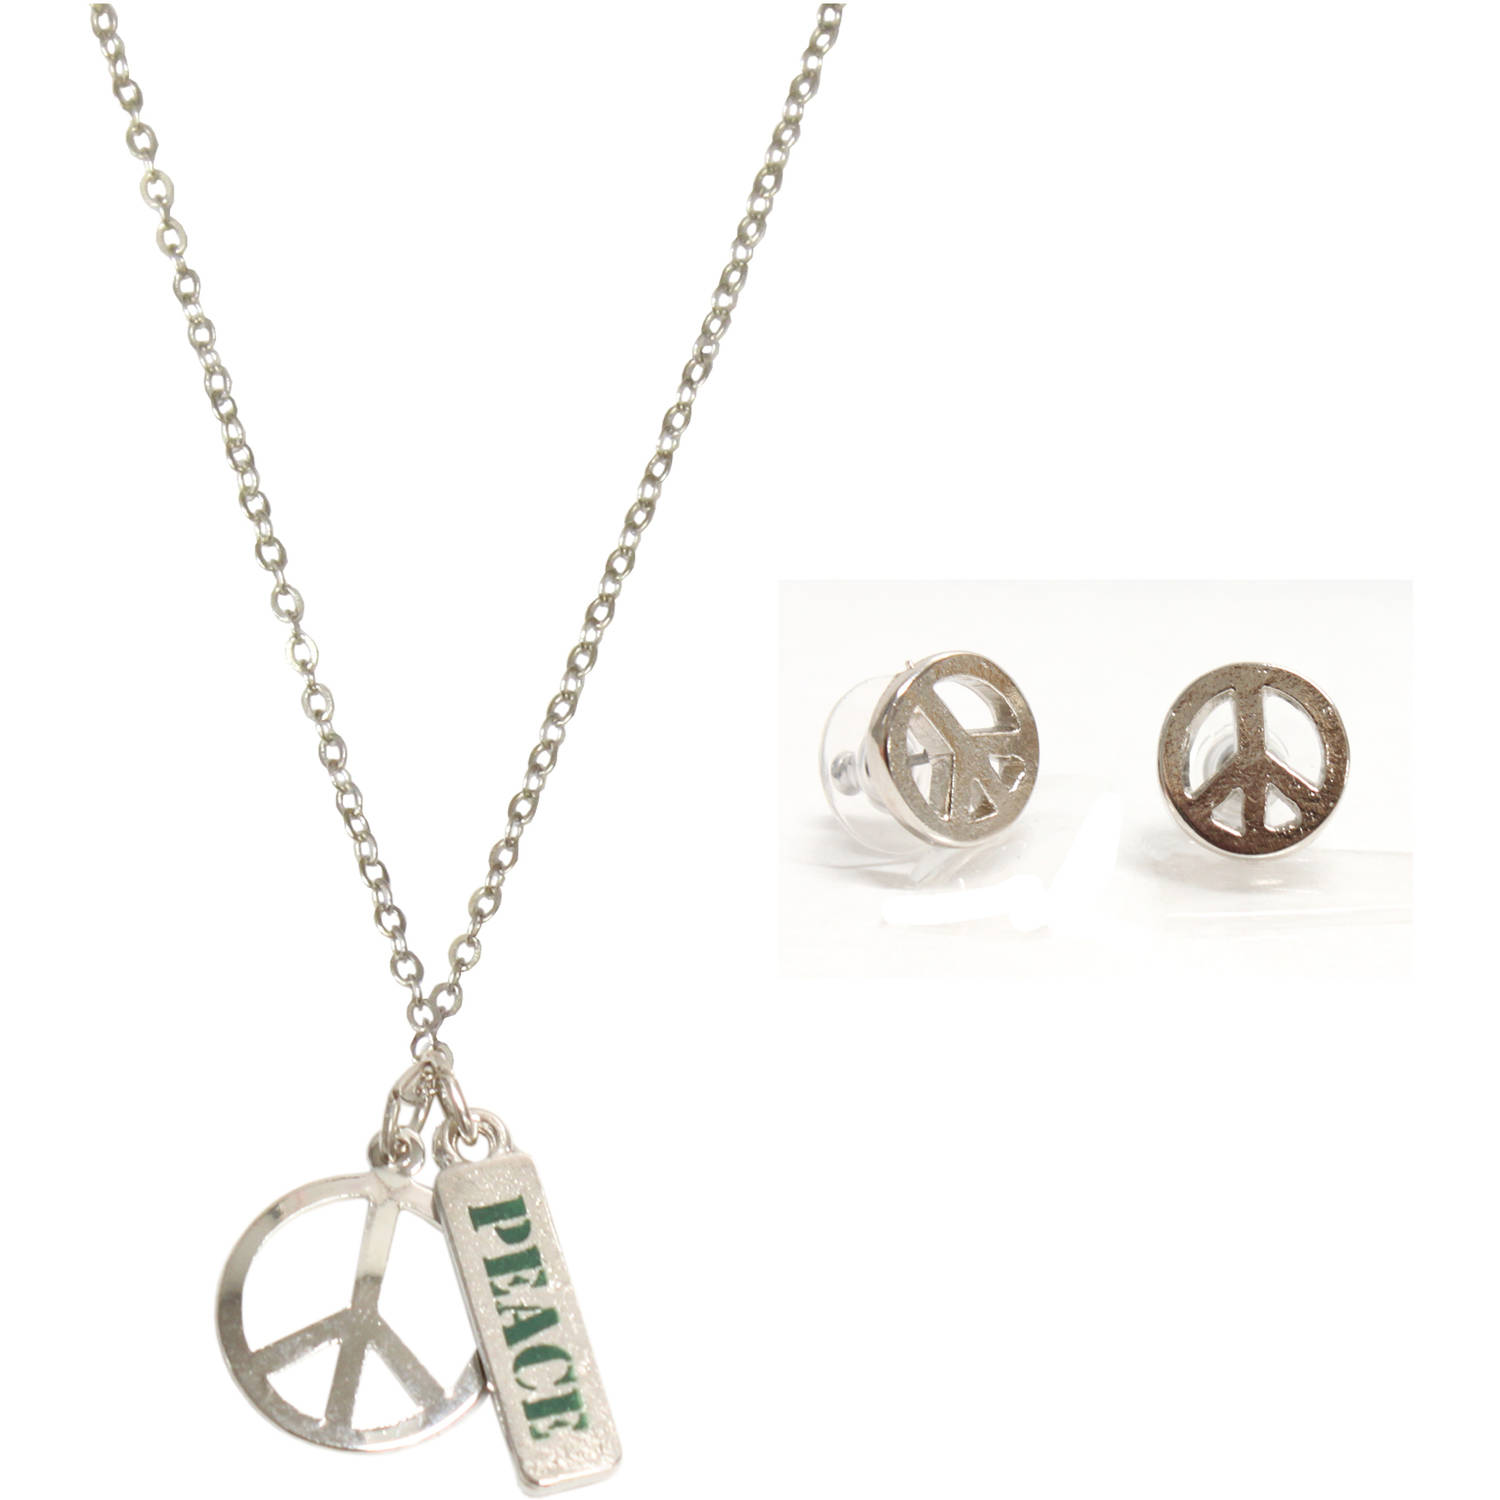 rhodium peace necklace and earrings jewelry set walmart